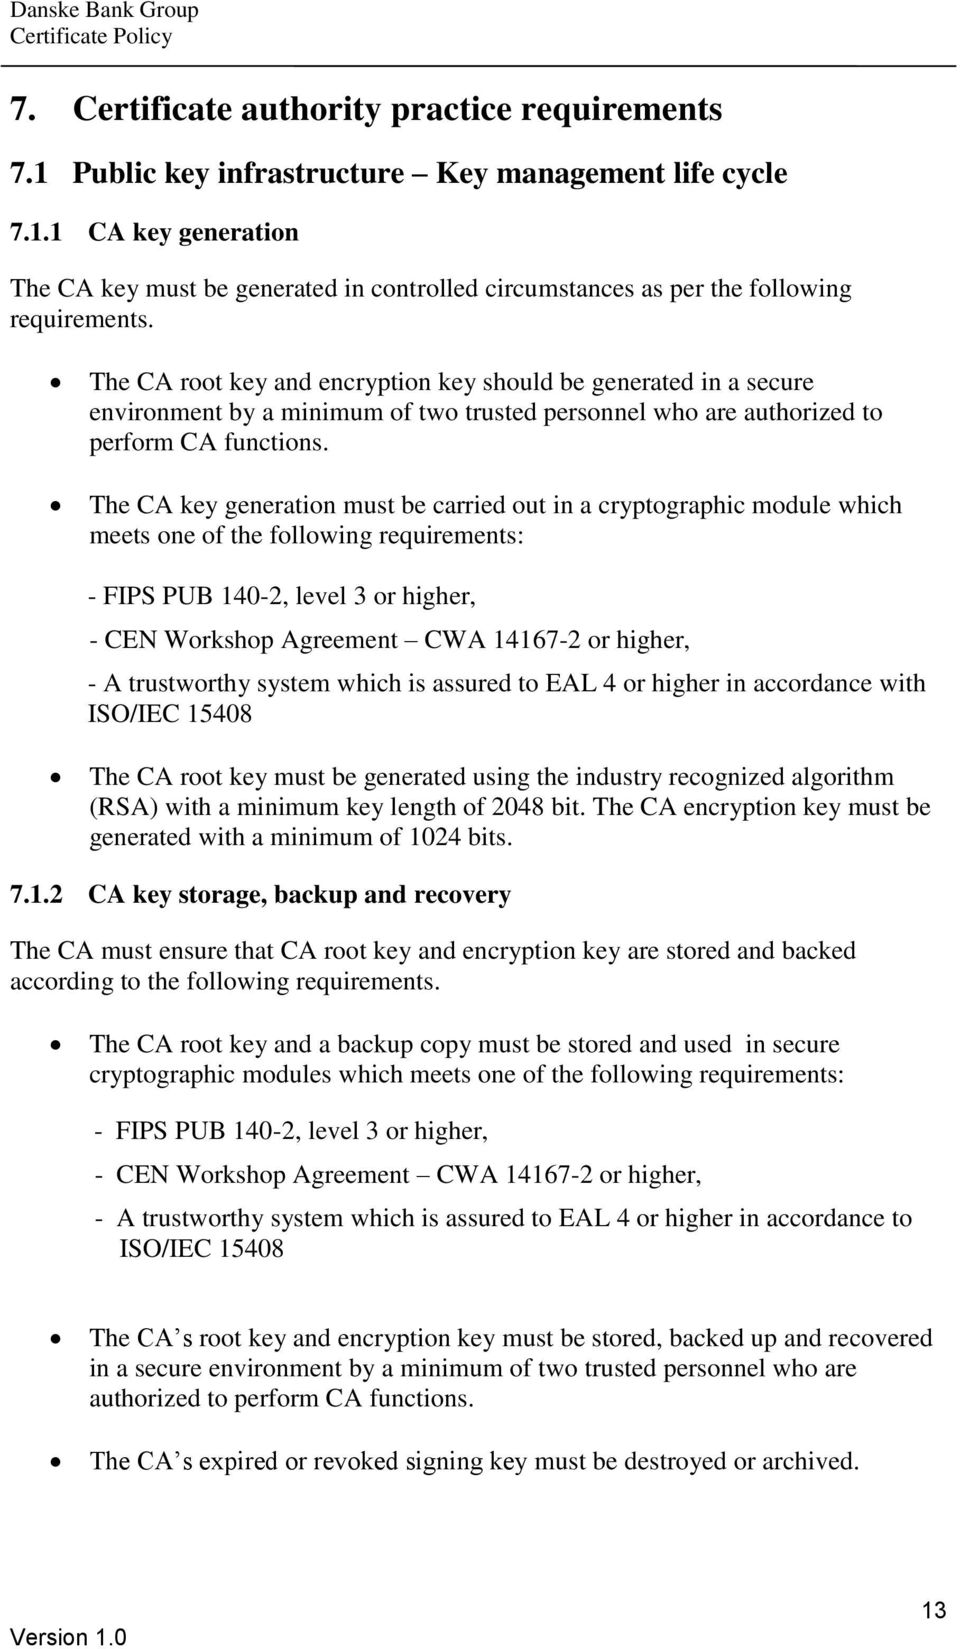 The CA key generation must be carried out in a cryptographic module which meets one of the following requirements: - FIPS PUB 140-2, level 3 or higher, - CEN Workshop Agreement CWA 14167-2 or higher,